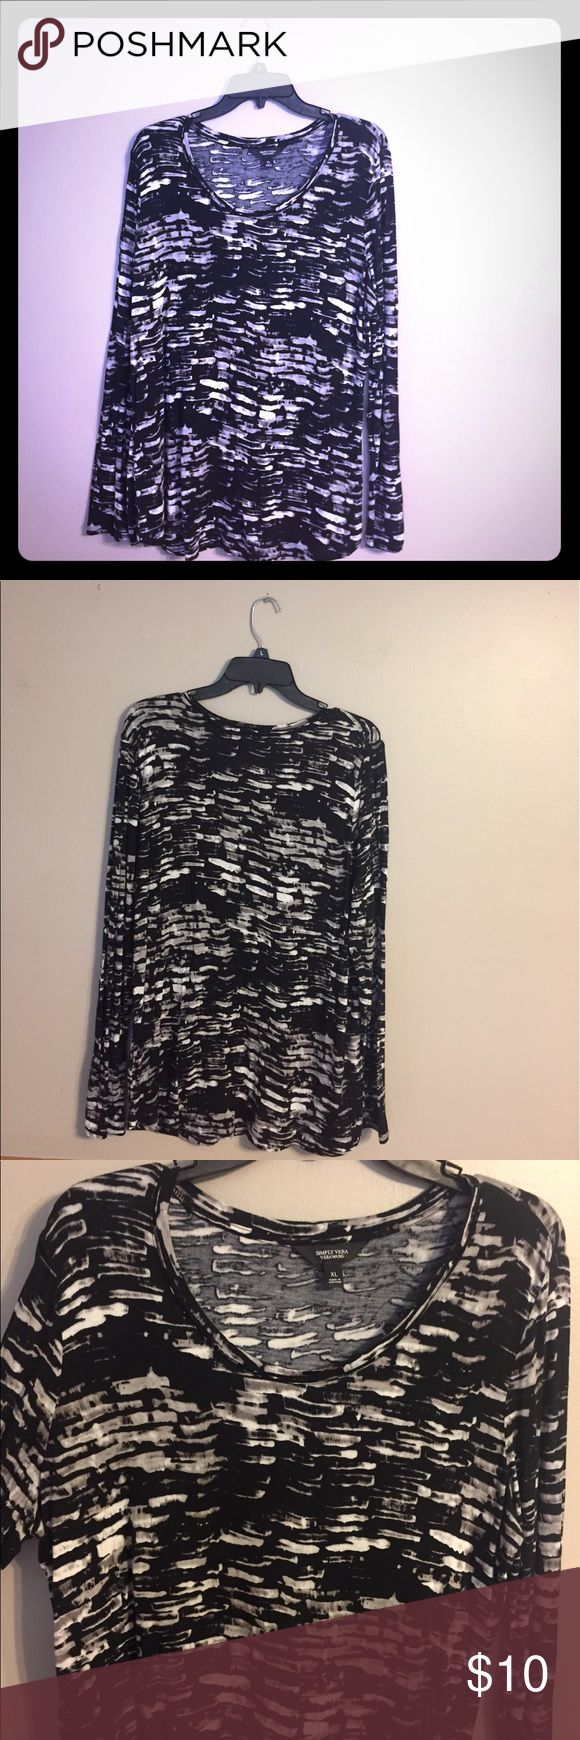 NWOT Simply Vera Wang Top NWOT long sleeve round hem top by Simply Vera Wang. Only worn once to try on. Cute casual top that can be worn business casual as well! Simply Vera Vera Wang Tops Tees - Long Sleeve